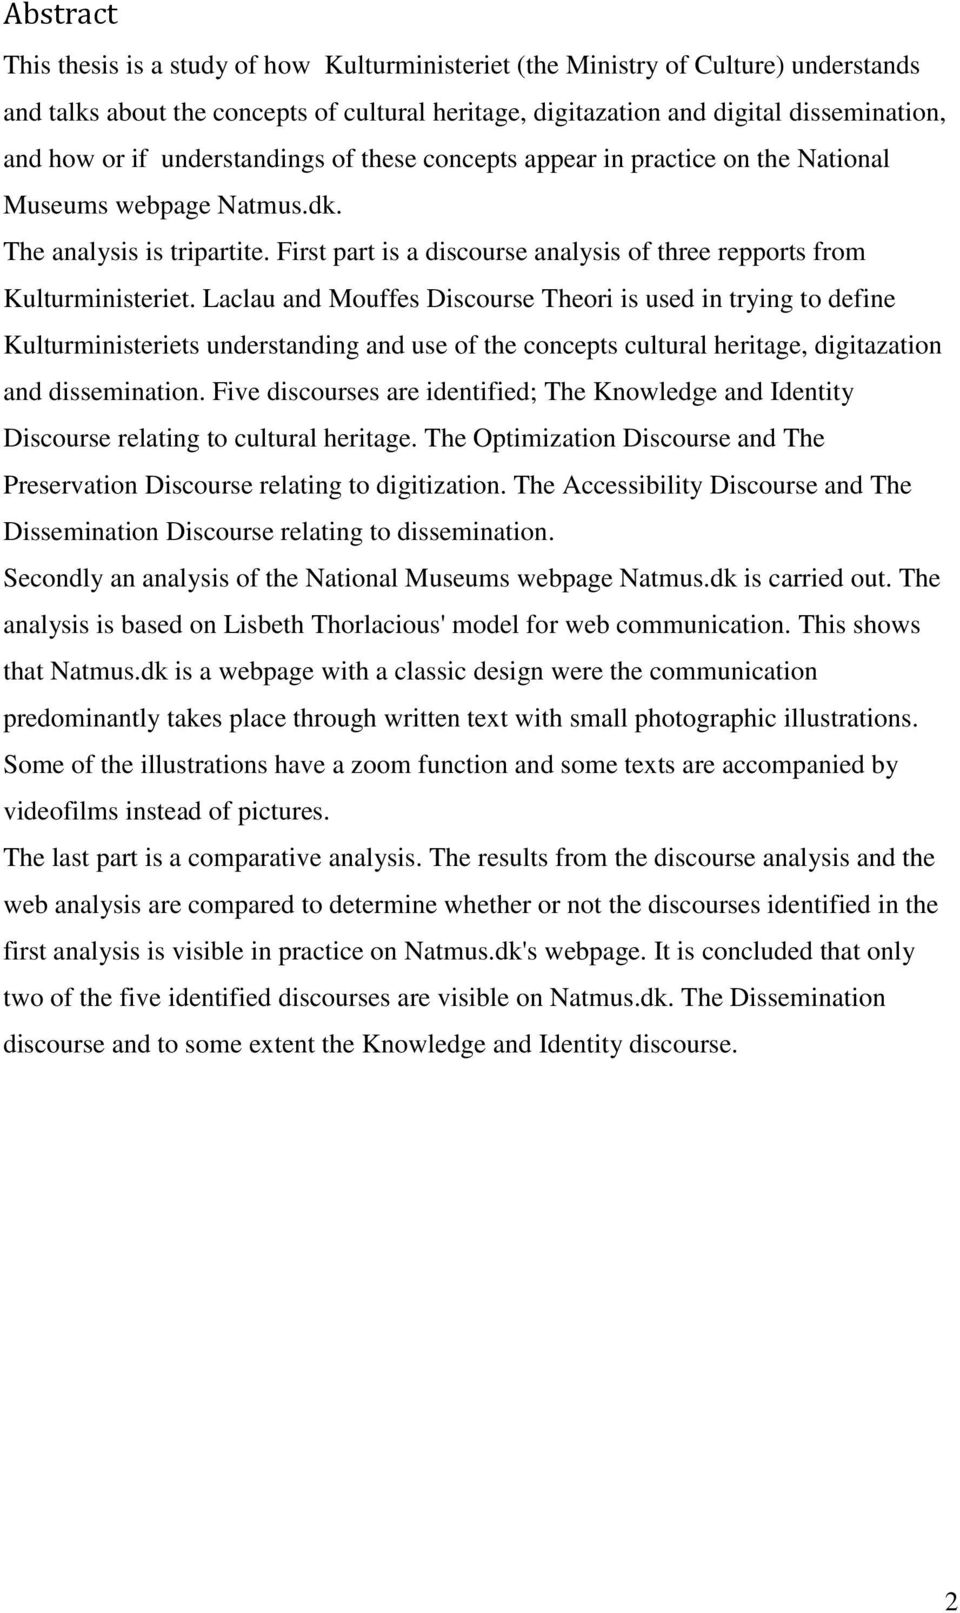 Laclau and Mouffes Discourse Theori is used in trying to define Kulturministeriets understanding and use of the concepts cultural heritage, digitazation and dissemination.